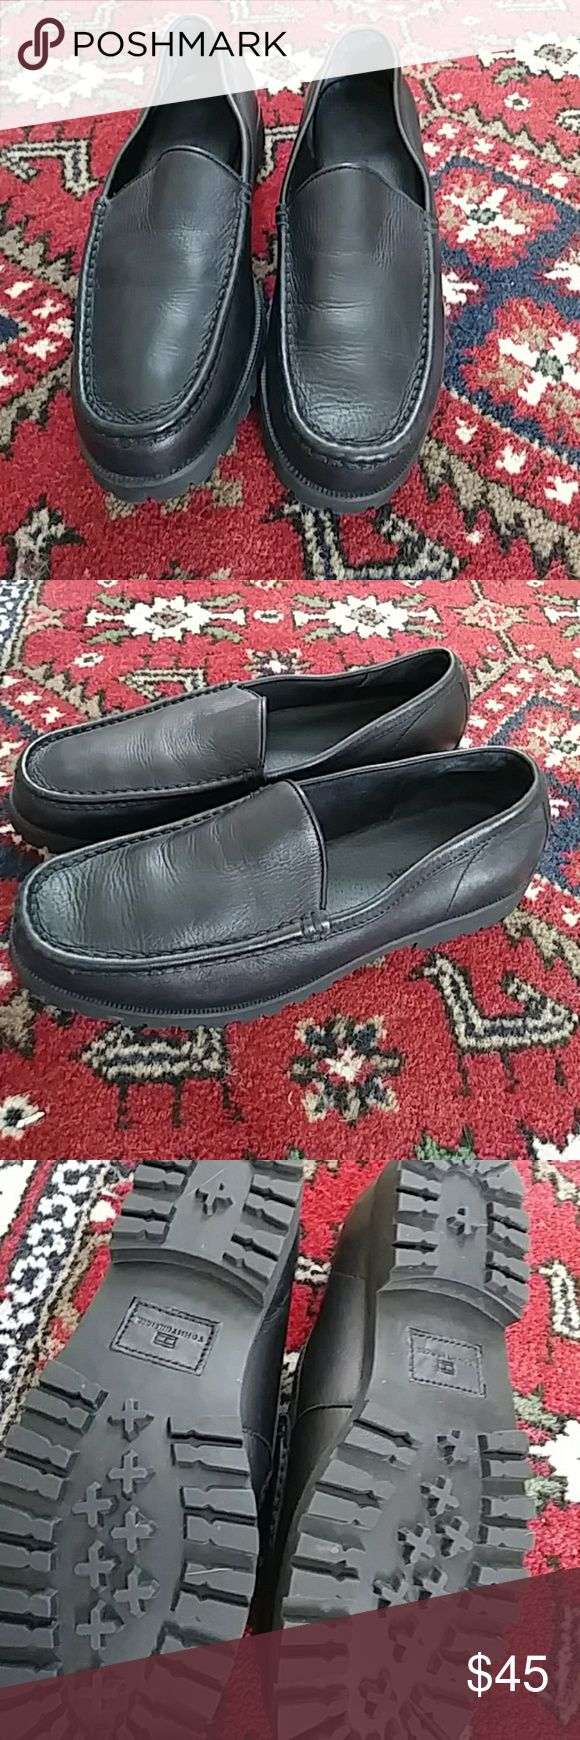 Tommy Hilfiger Mens Leather Loafers Black genuine leather mens loafers. Brand new without tags. Never worn and no box. Tommy Hilfiger Shoes Loafers & Slip-Ons